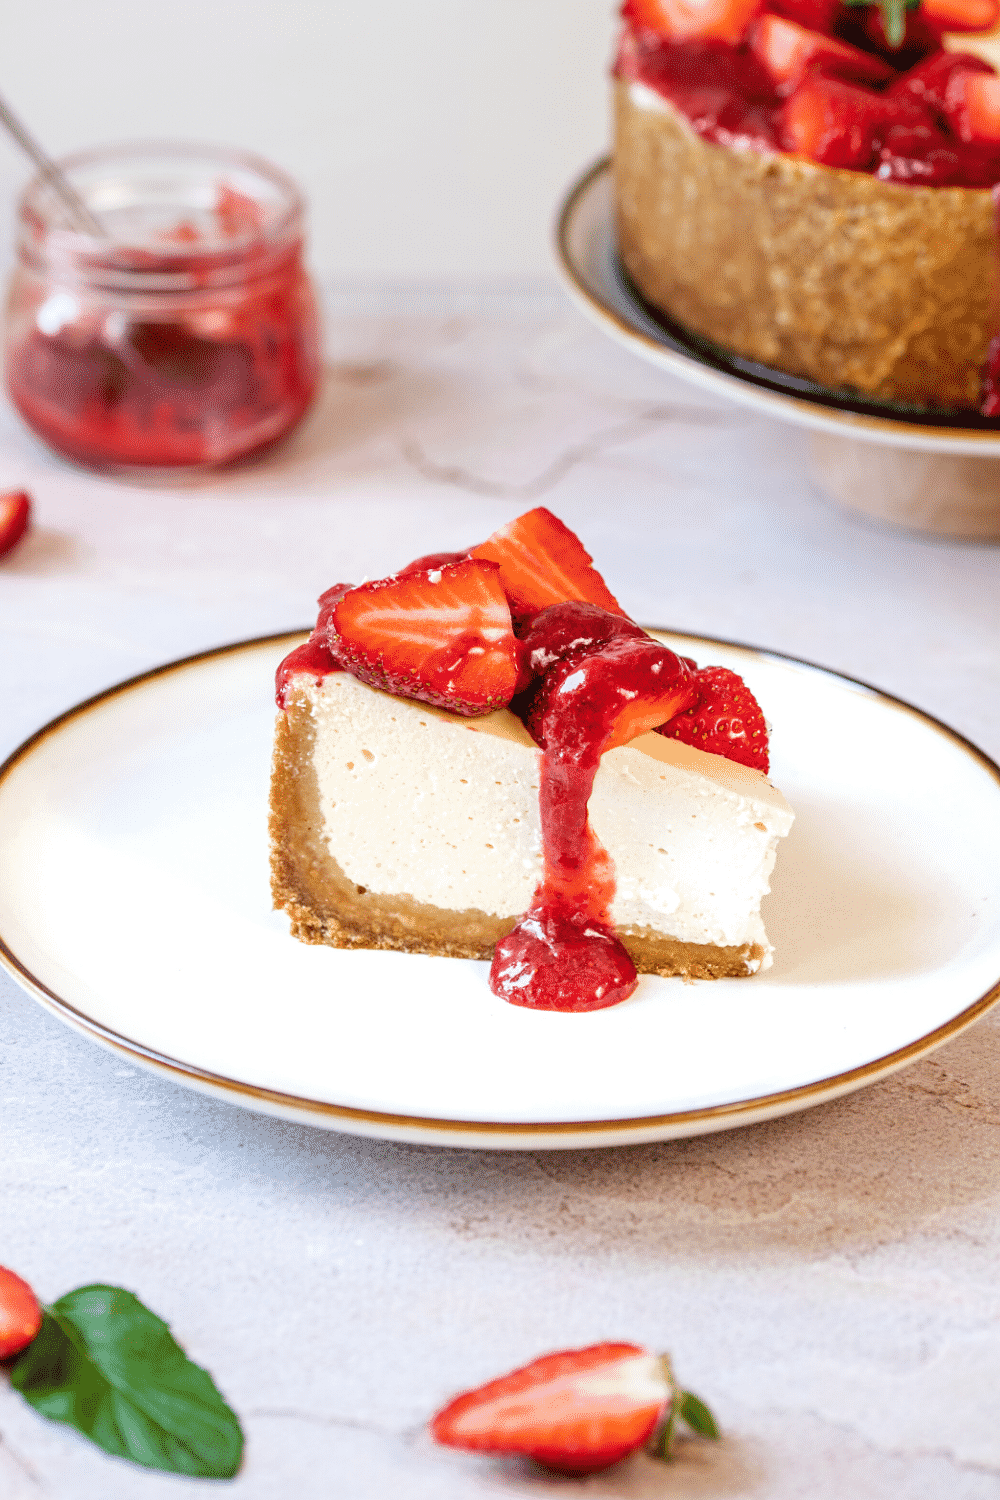 A piece of strawberry cheesecake on a white plate. There is a jar of the strawberry topping behind the plate on the white counter.